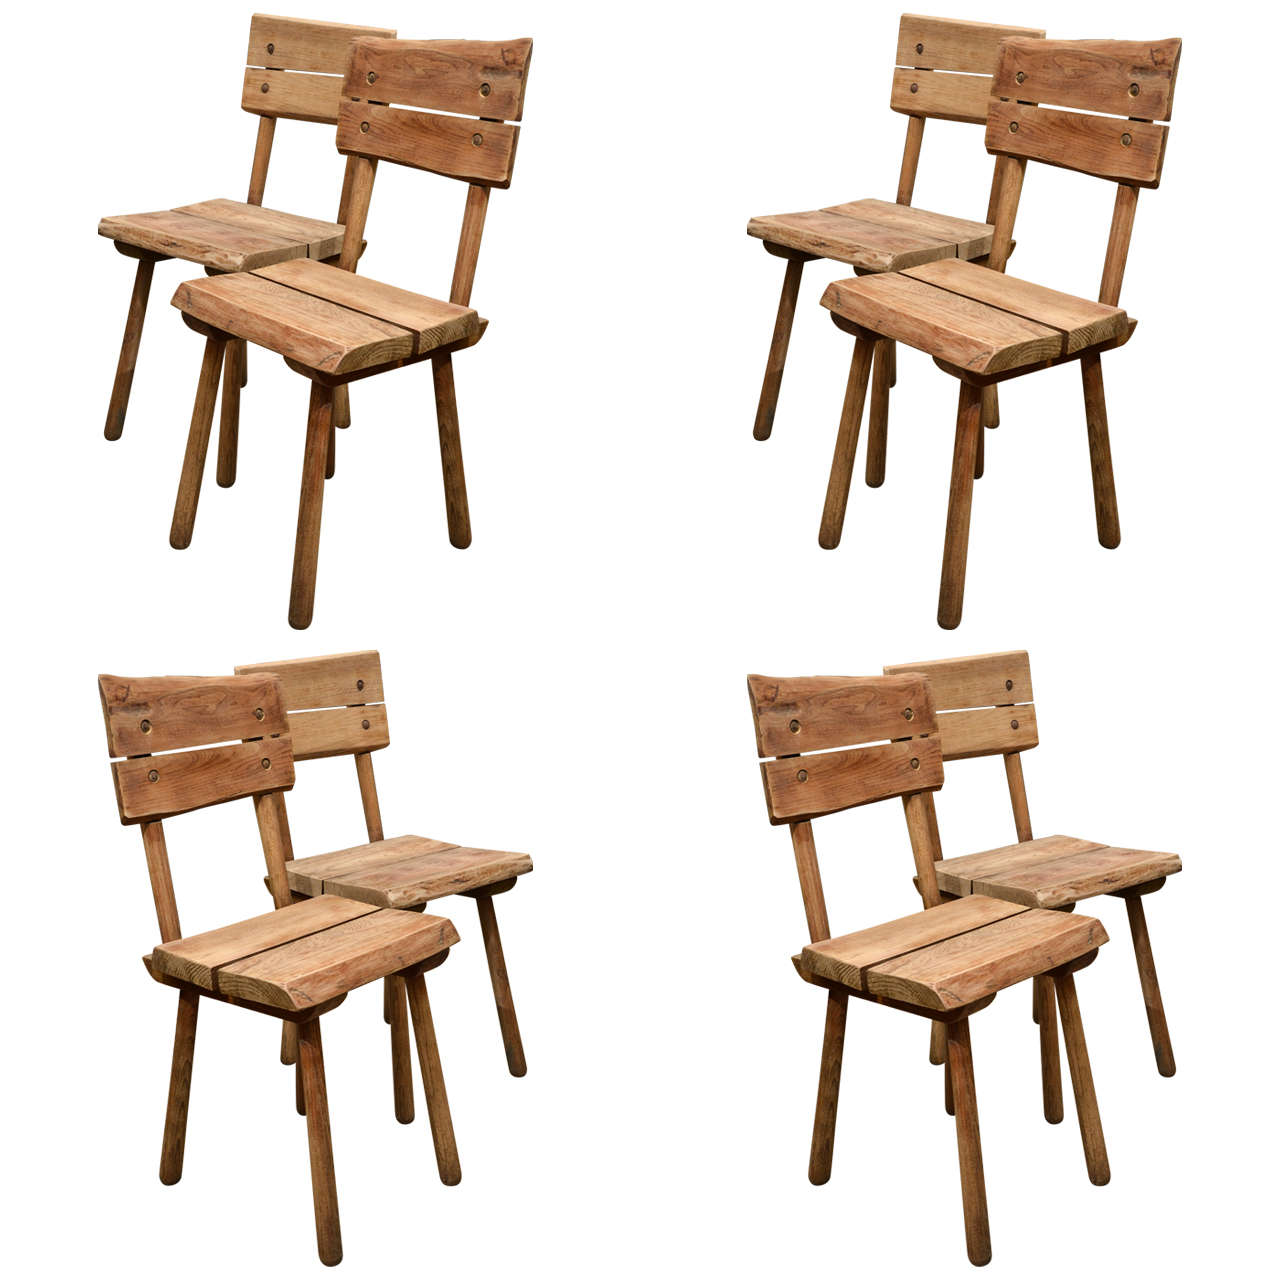 Rustic Dining Chairs Set Of Eight Rustic Oak Dining Chairs For Sale At 1stdibs